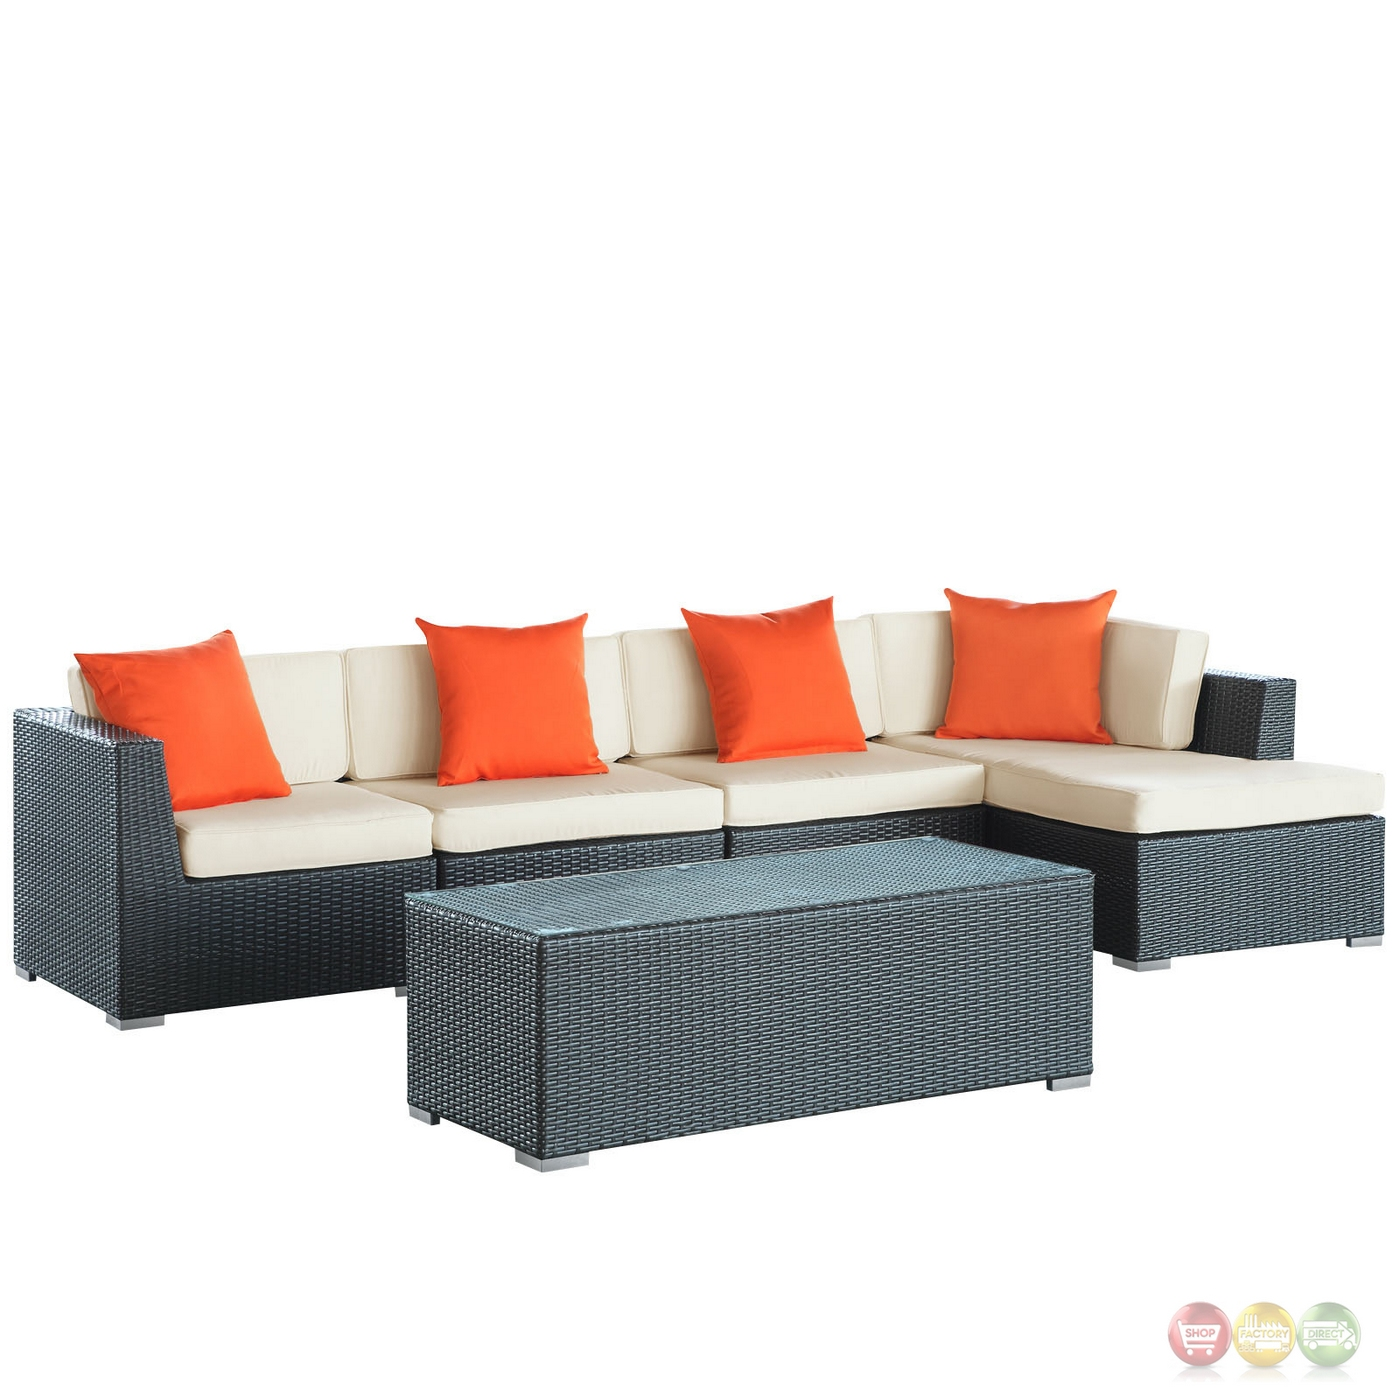 5 Piece Signal Modern Patio Sectional Sofa Set With Uv